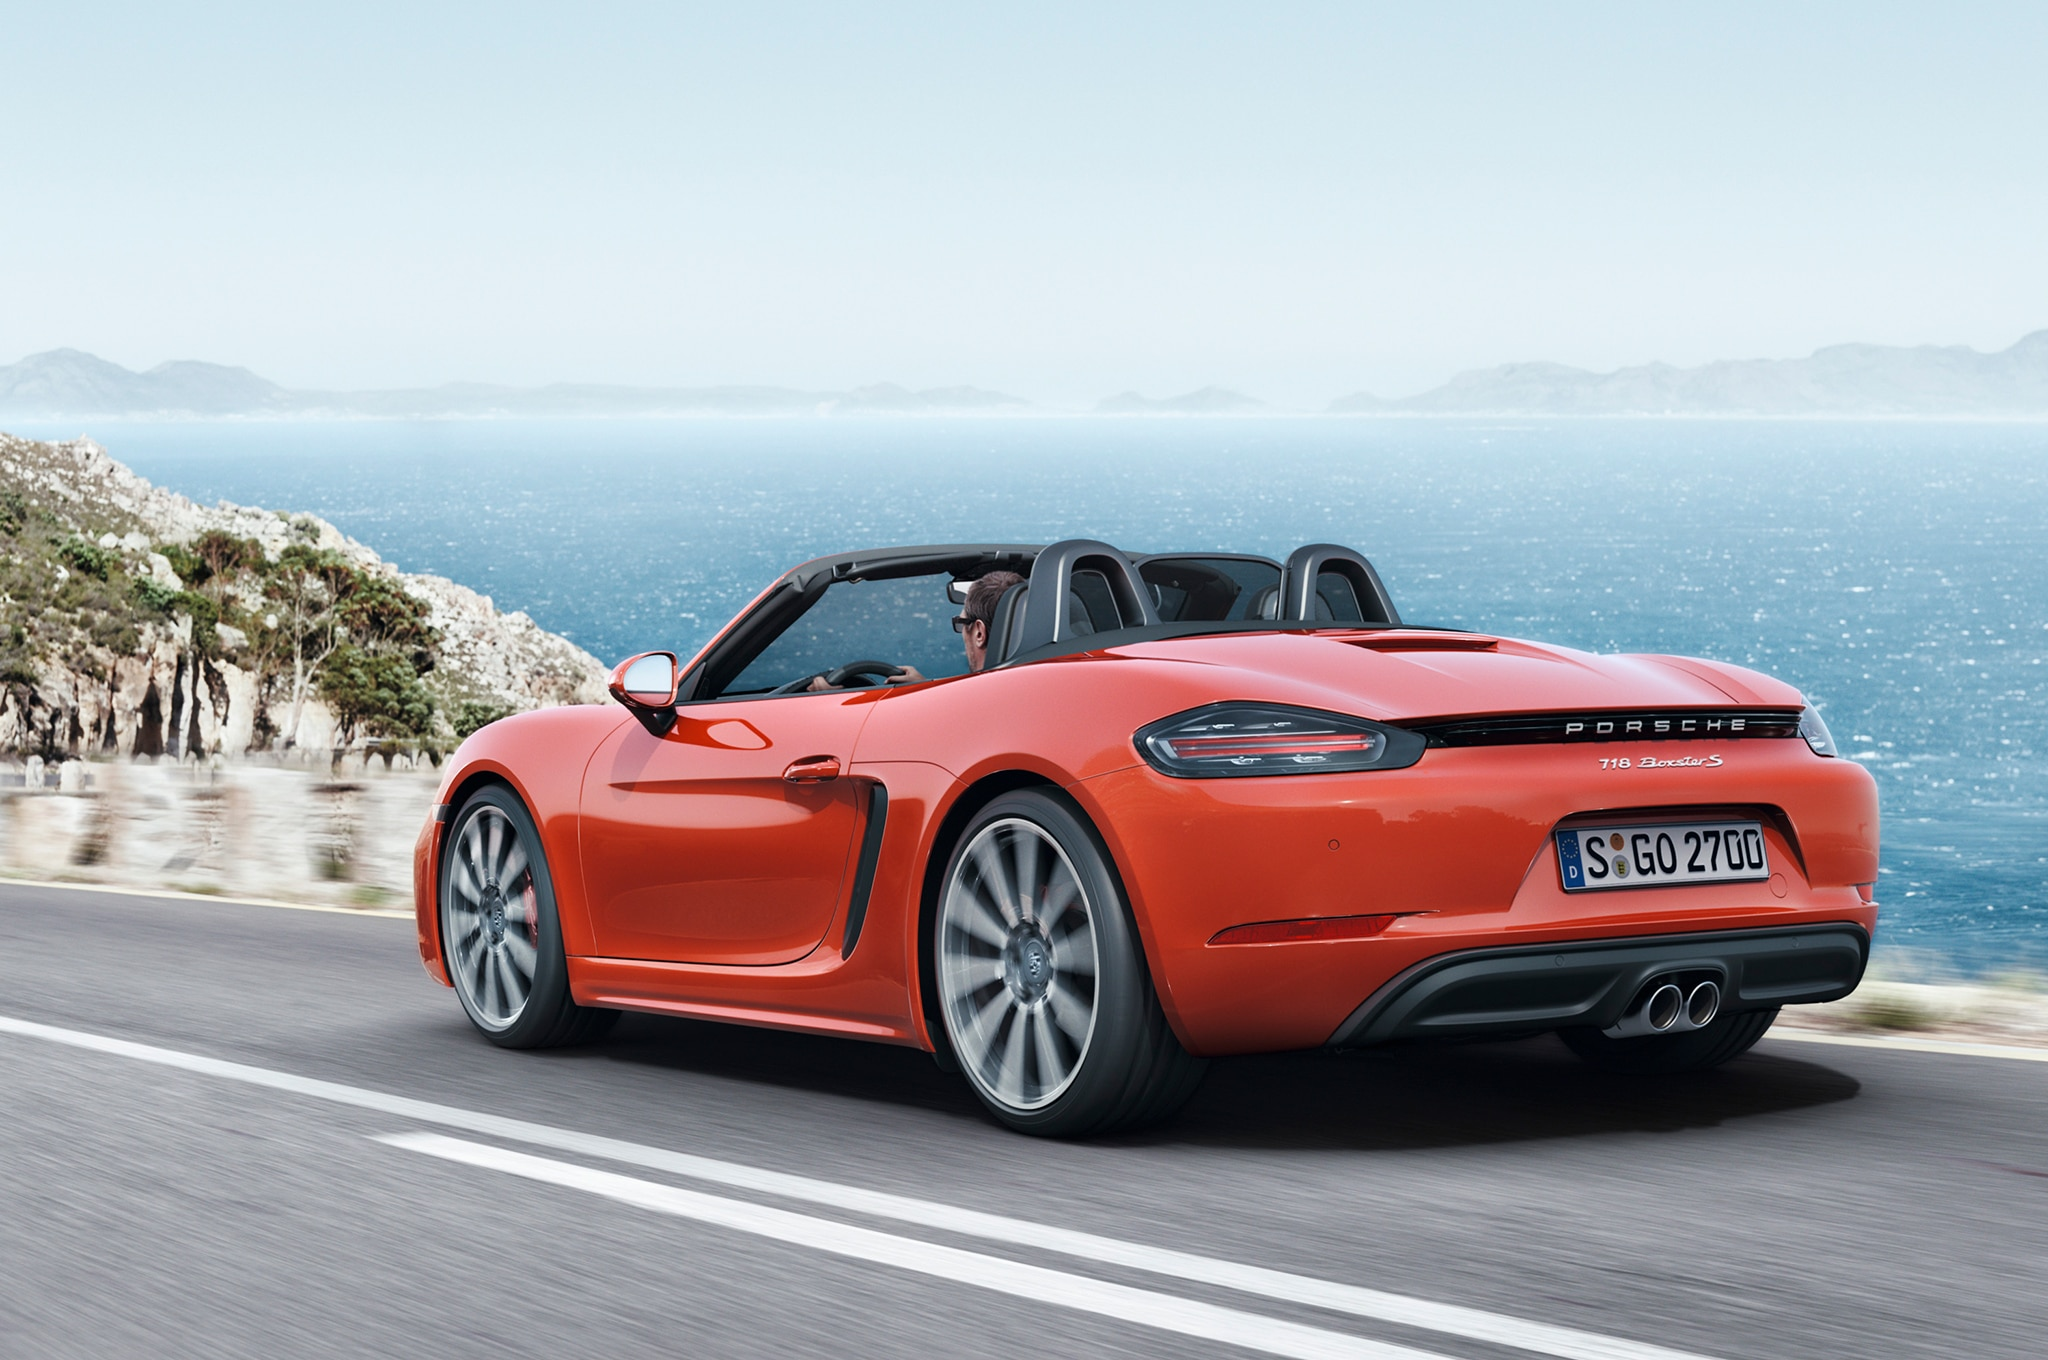 2017 porsche 718 boxster fully revealed with turbo flat-four engines